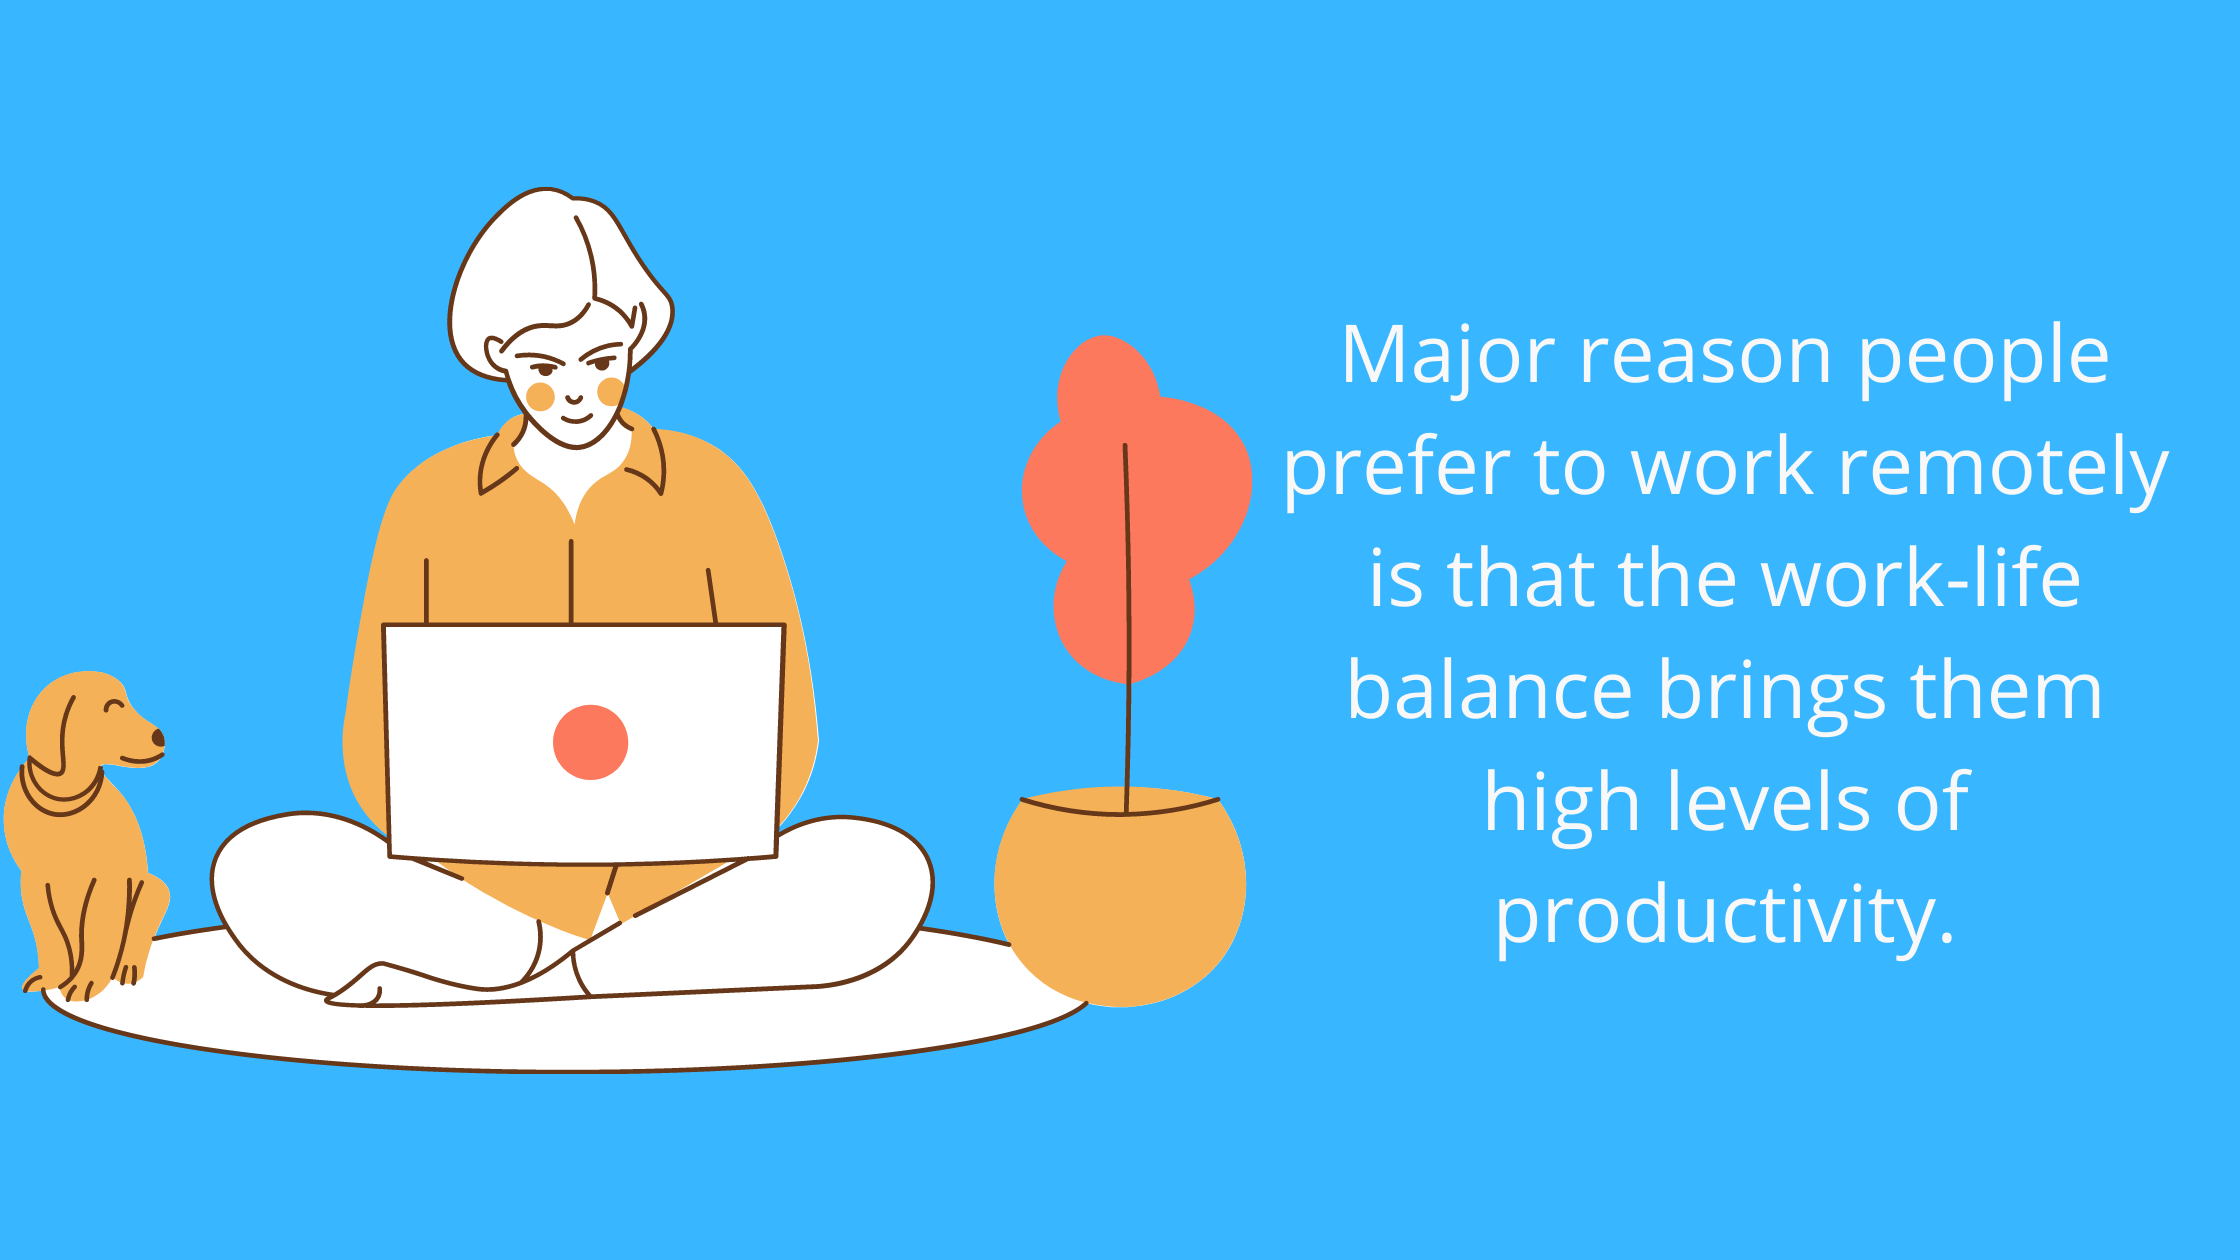 work-related stress and remote work productivity stats and facts